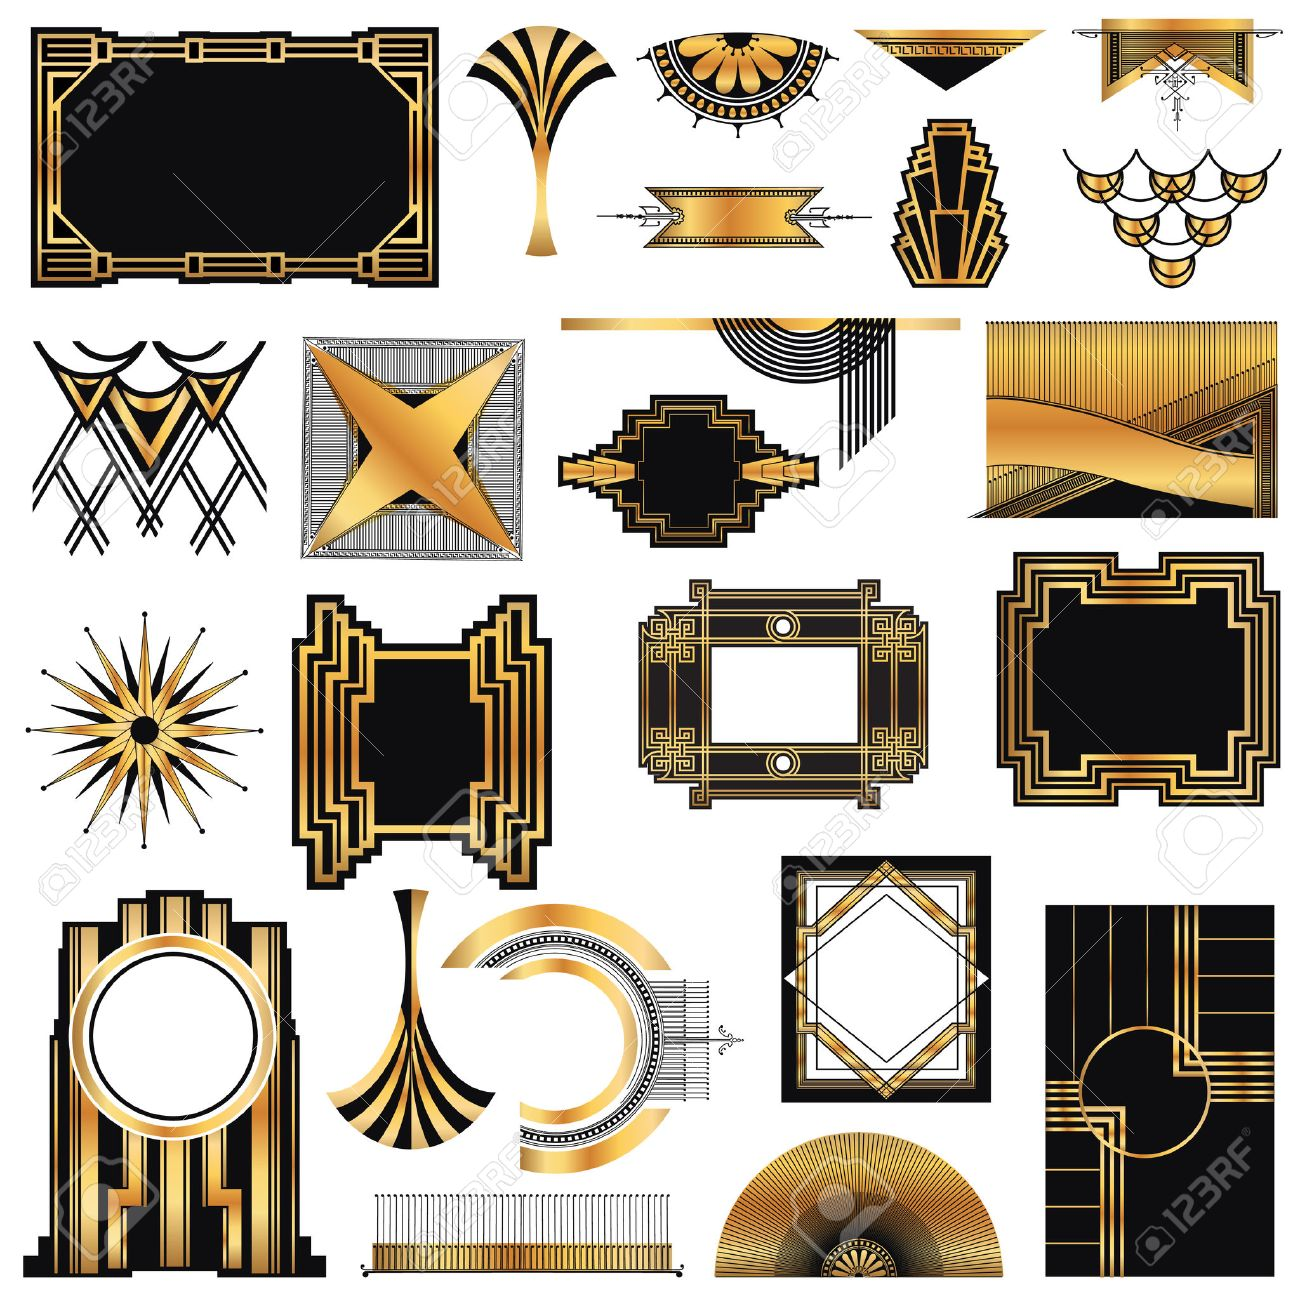 Art Deco Design Elements art deco vintage frames and design elements royalty free cliparts